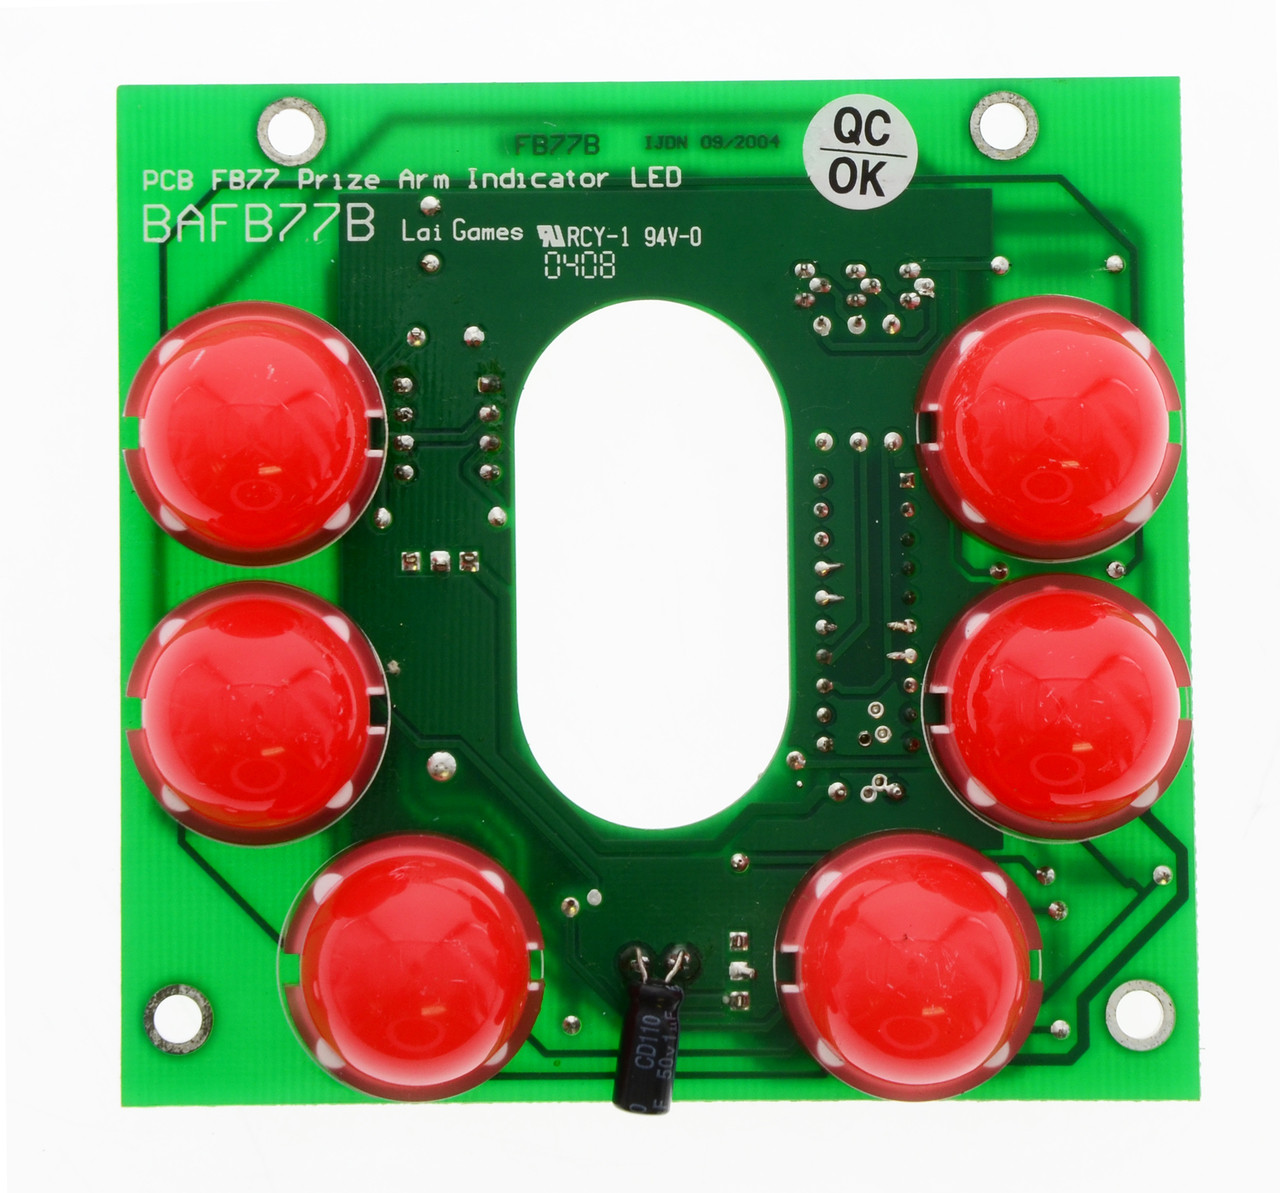 Modified Prize Arm LED Indicator for Stacker (BAFB77B)